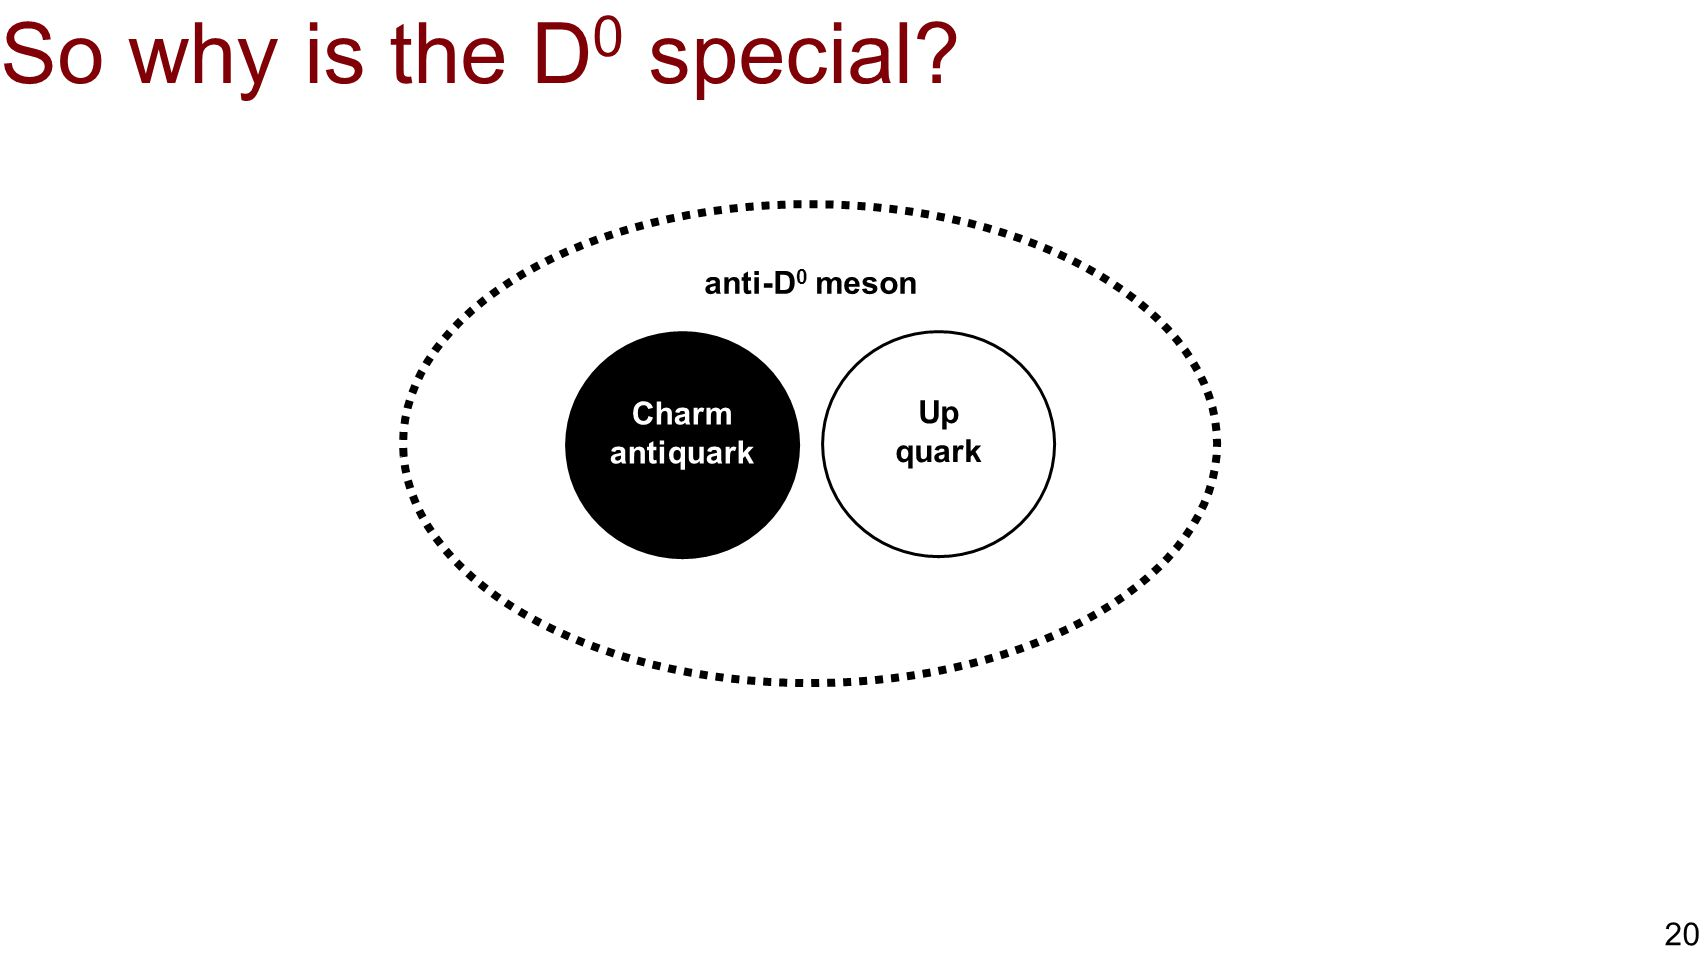 So why is the D0 special anti-D0 meson Charm antiquark Up quark